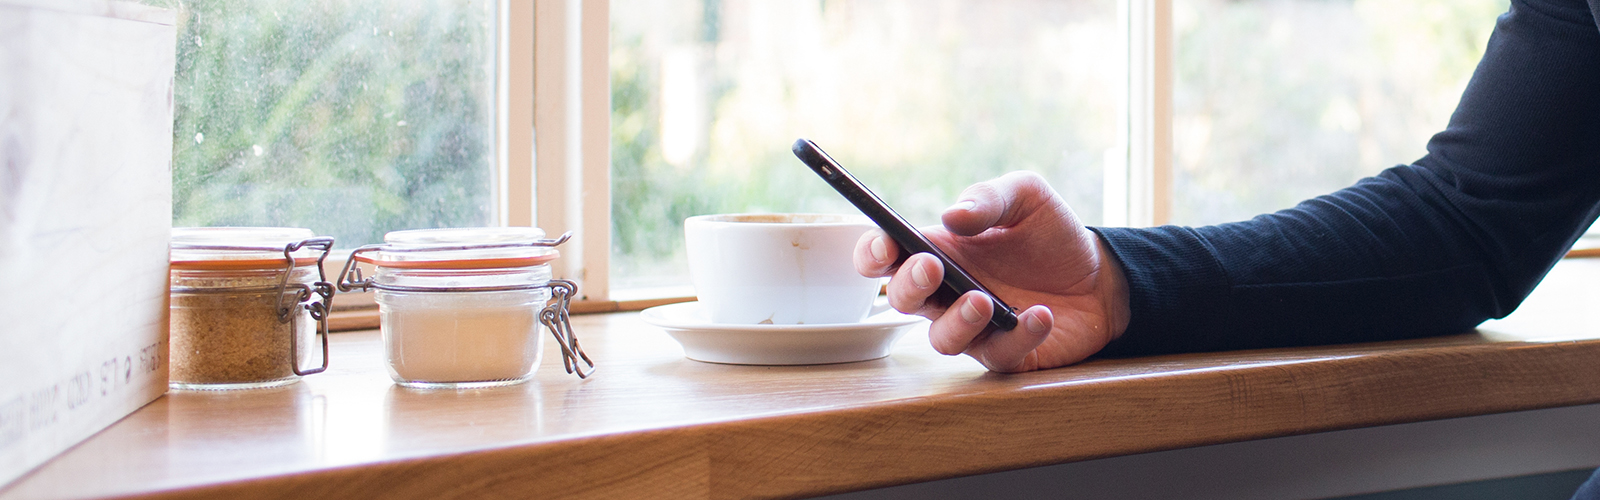 A person on their cell phone while drinking a cup of coffee.